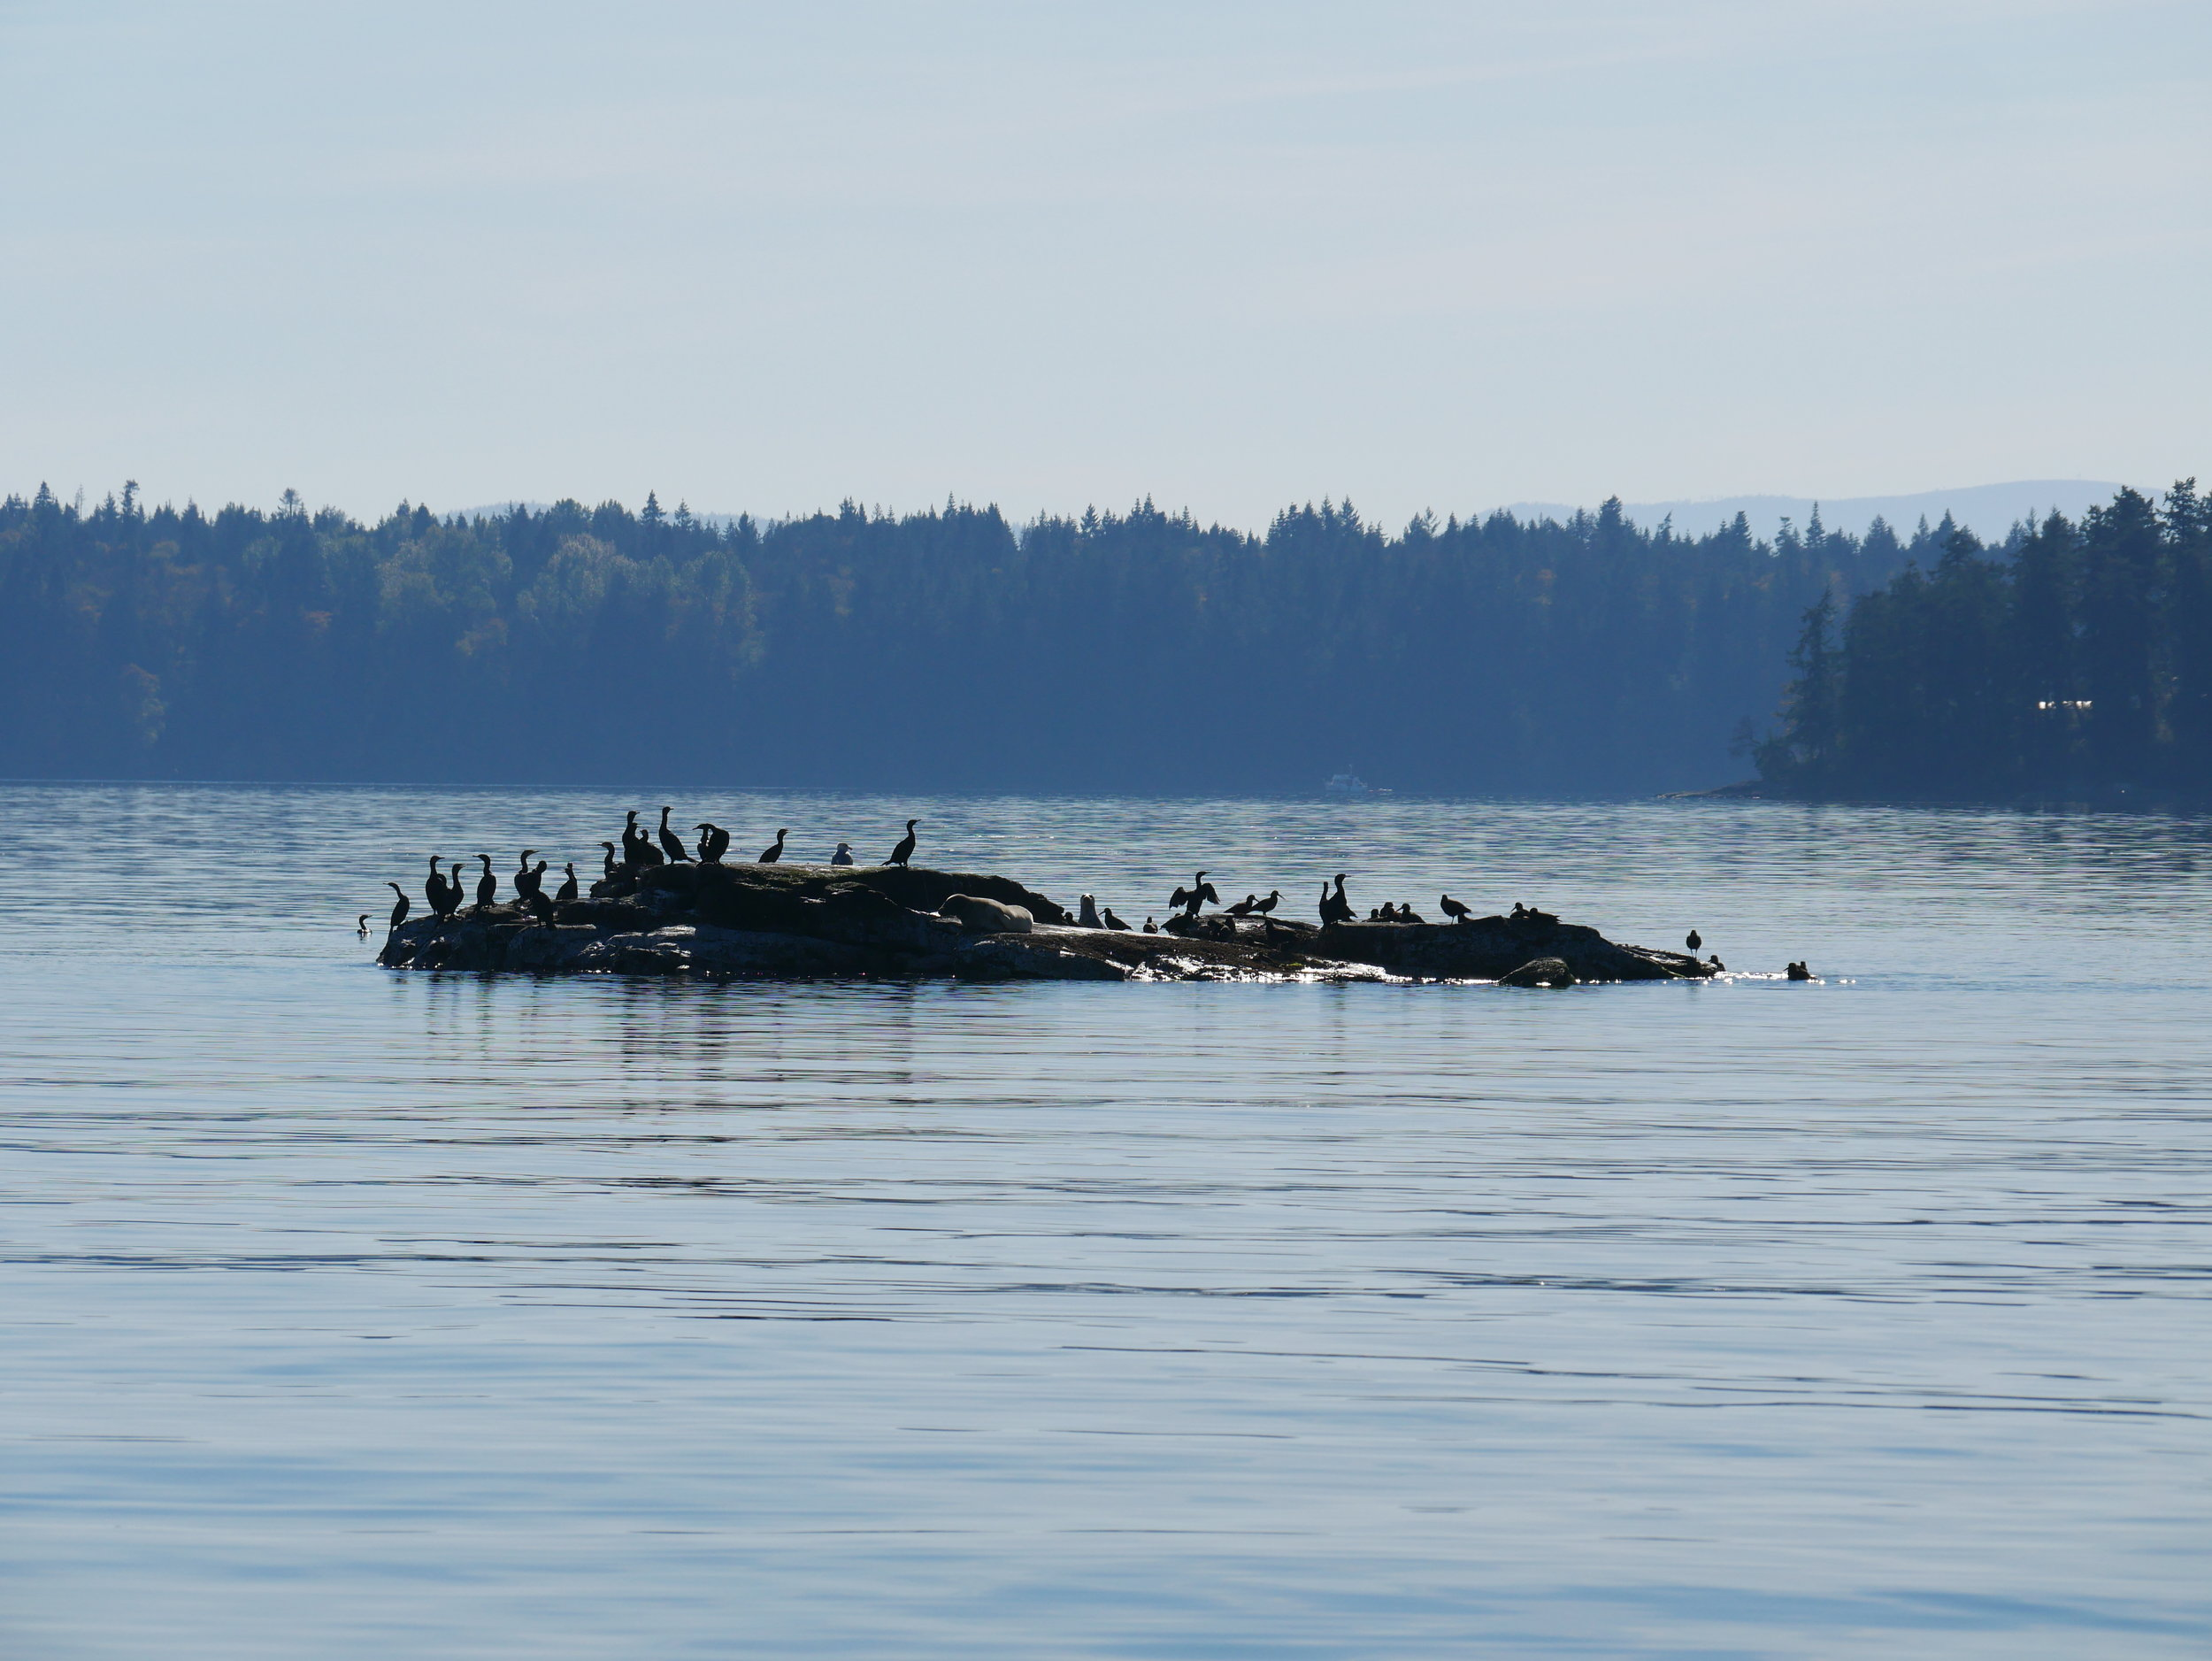 An island full of cormorants - check out the one drying its wings after a deep dive!